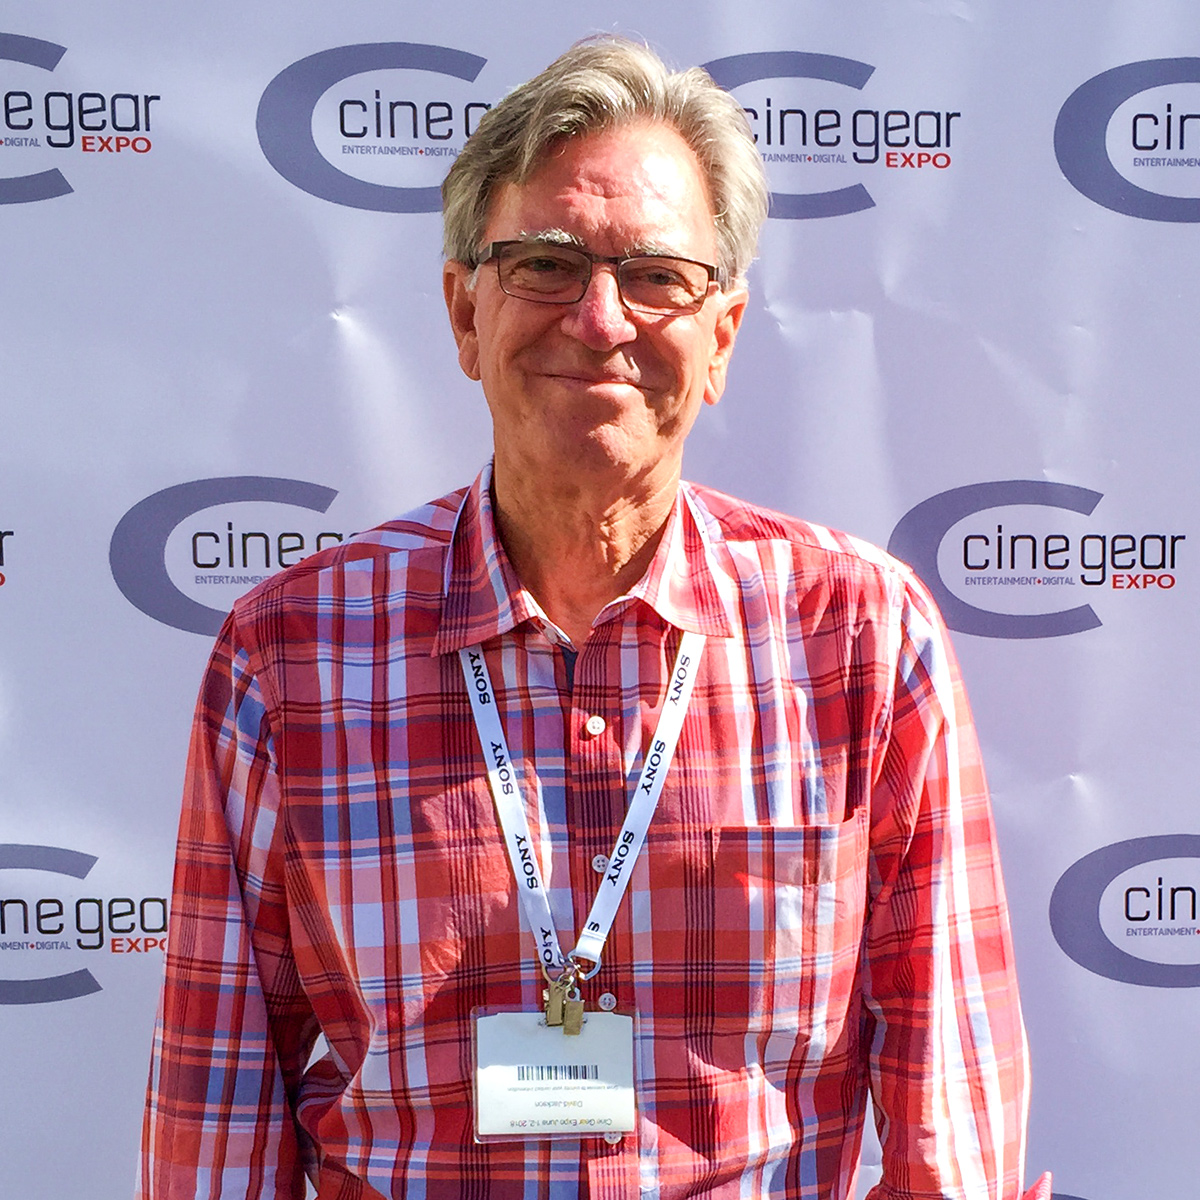 David Jackson executive producer of Food Over 50 at CineGear Expo